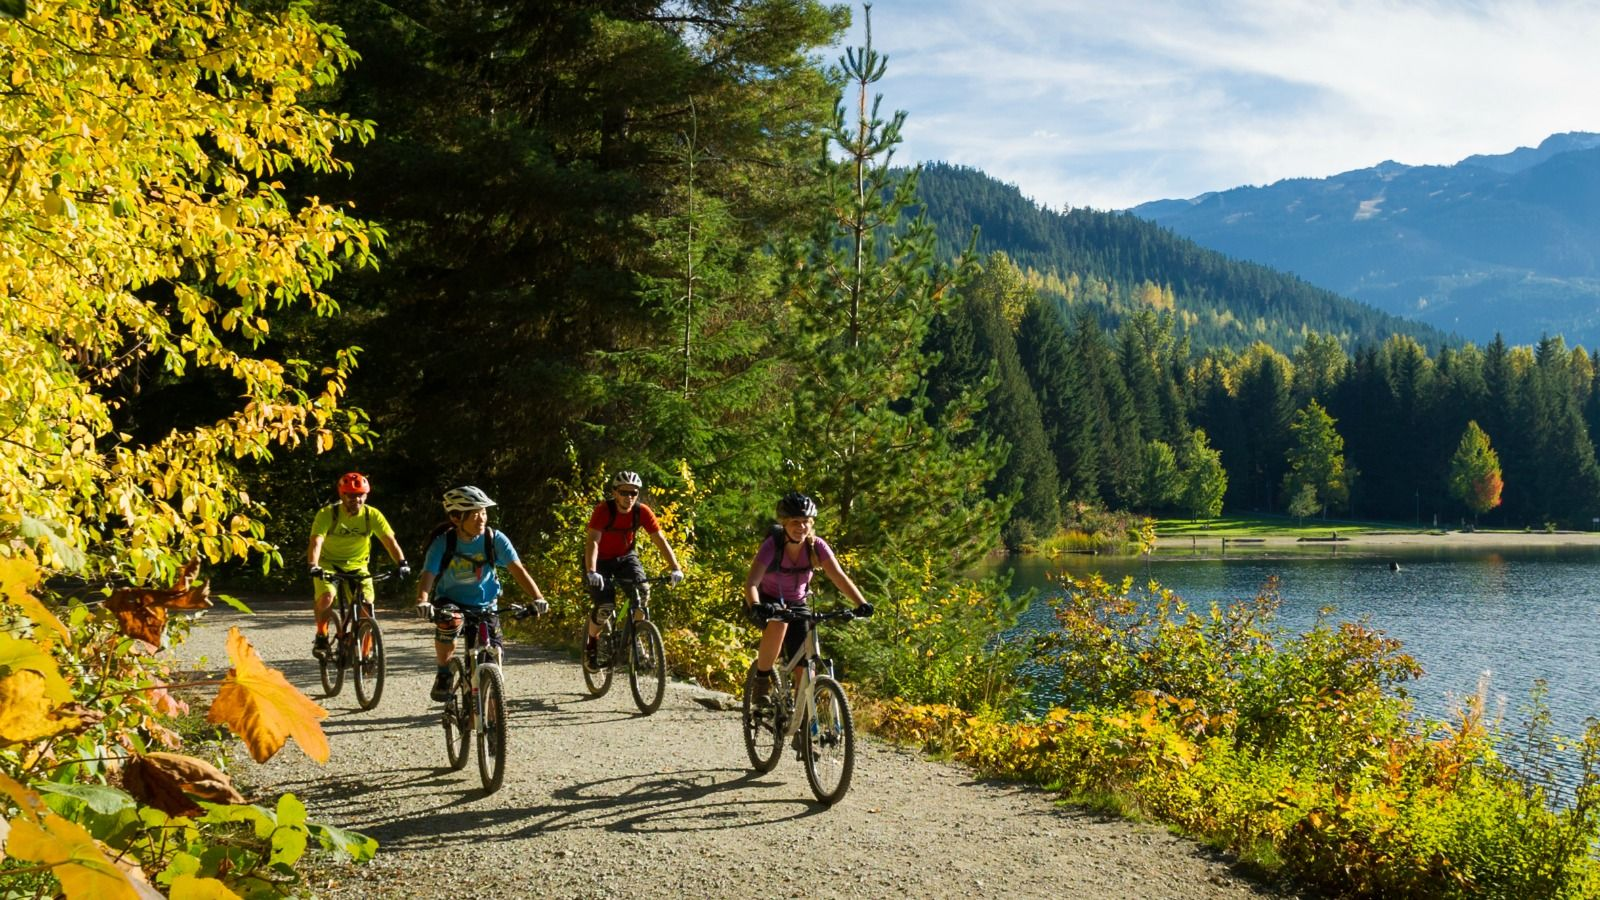 Things to Do in Whistler - Summer - Mountain Biking